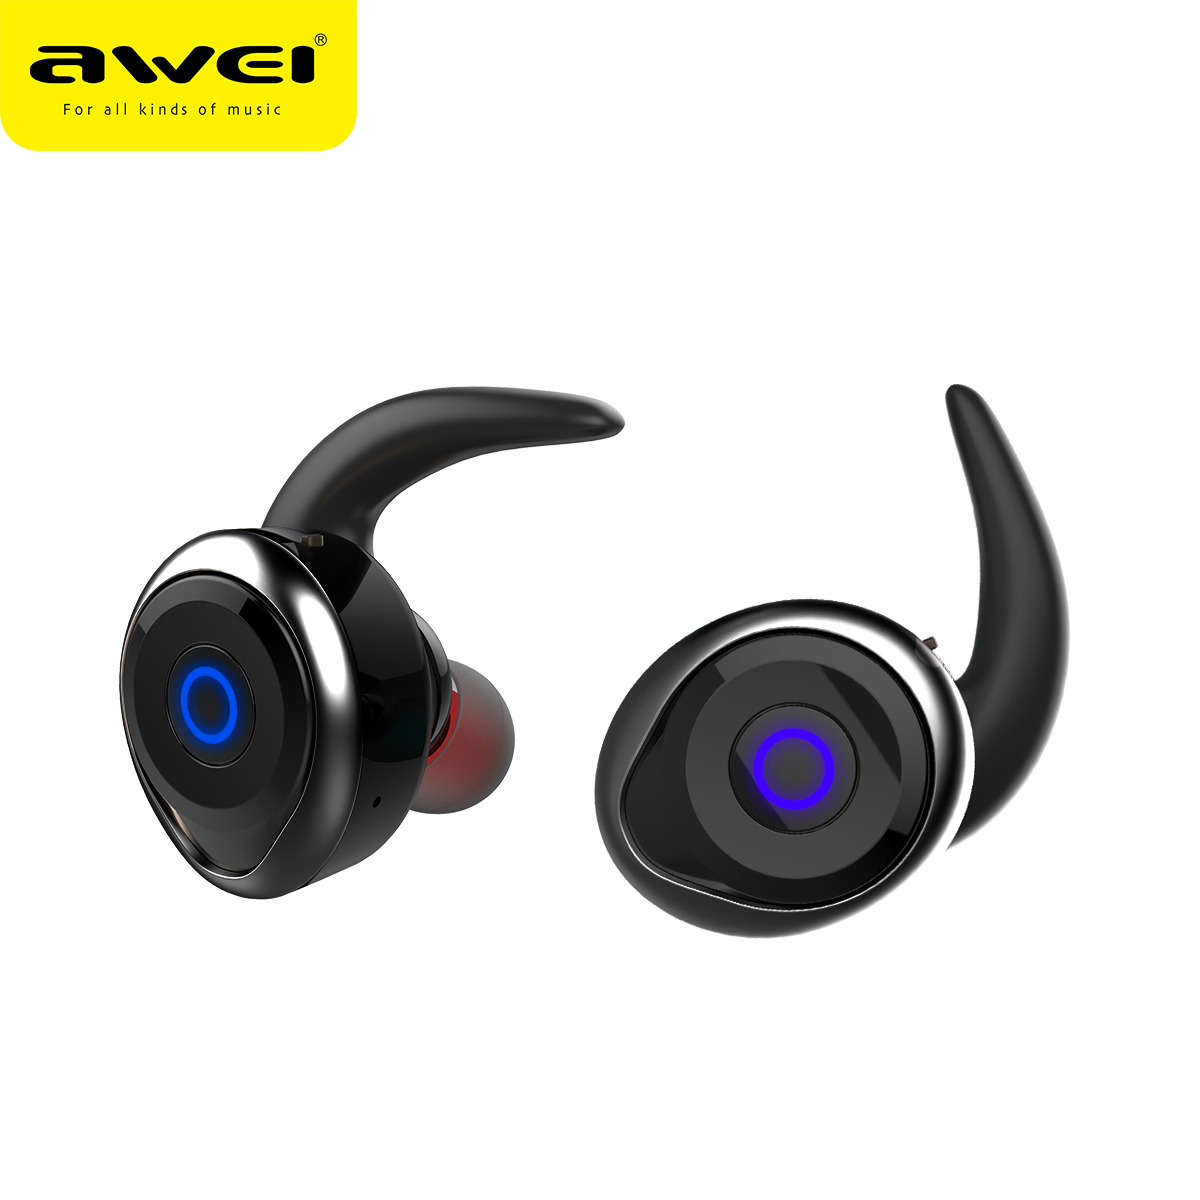 AWEI T1 TWS Bluetooth Headphones wireless Earphone Headset Double Wireless Earbuds Cordless Headphones Bluetooth V4.2 awei a920bls bluetooth earphone wireless headphone sport headset with magnet auriculares cordless headphones casque 10h music